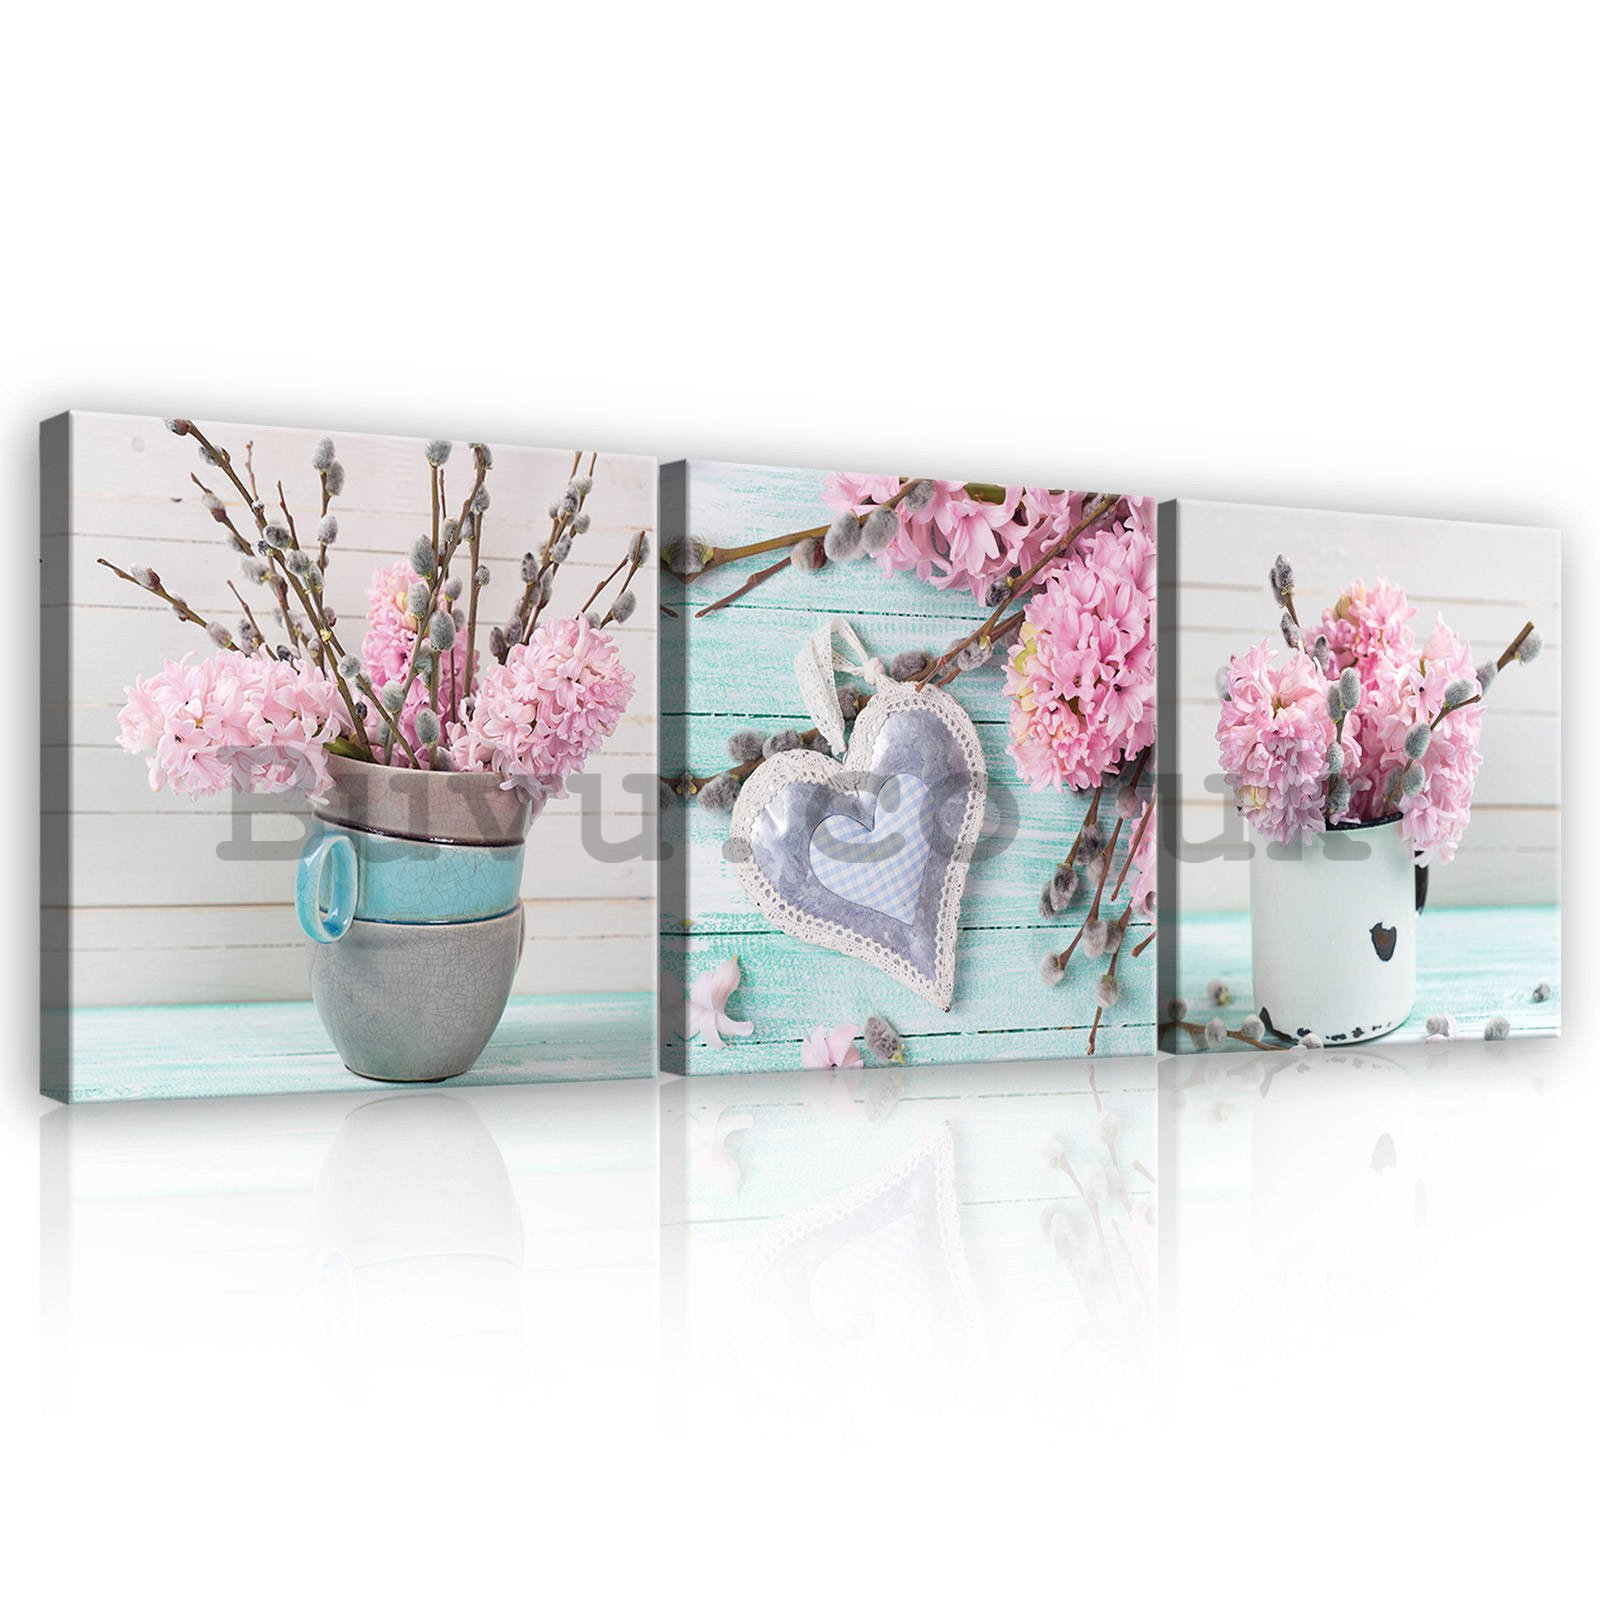 Painting on canvas: Still life with hyacinths - set 3pcs 25x25cm